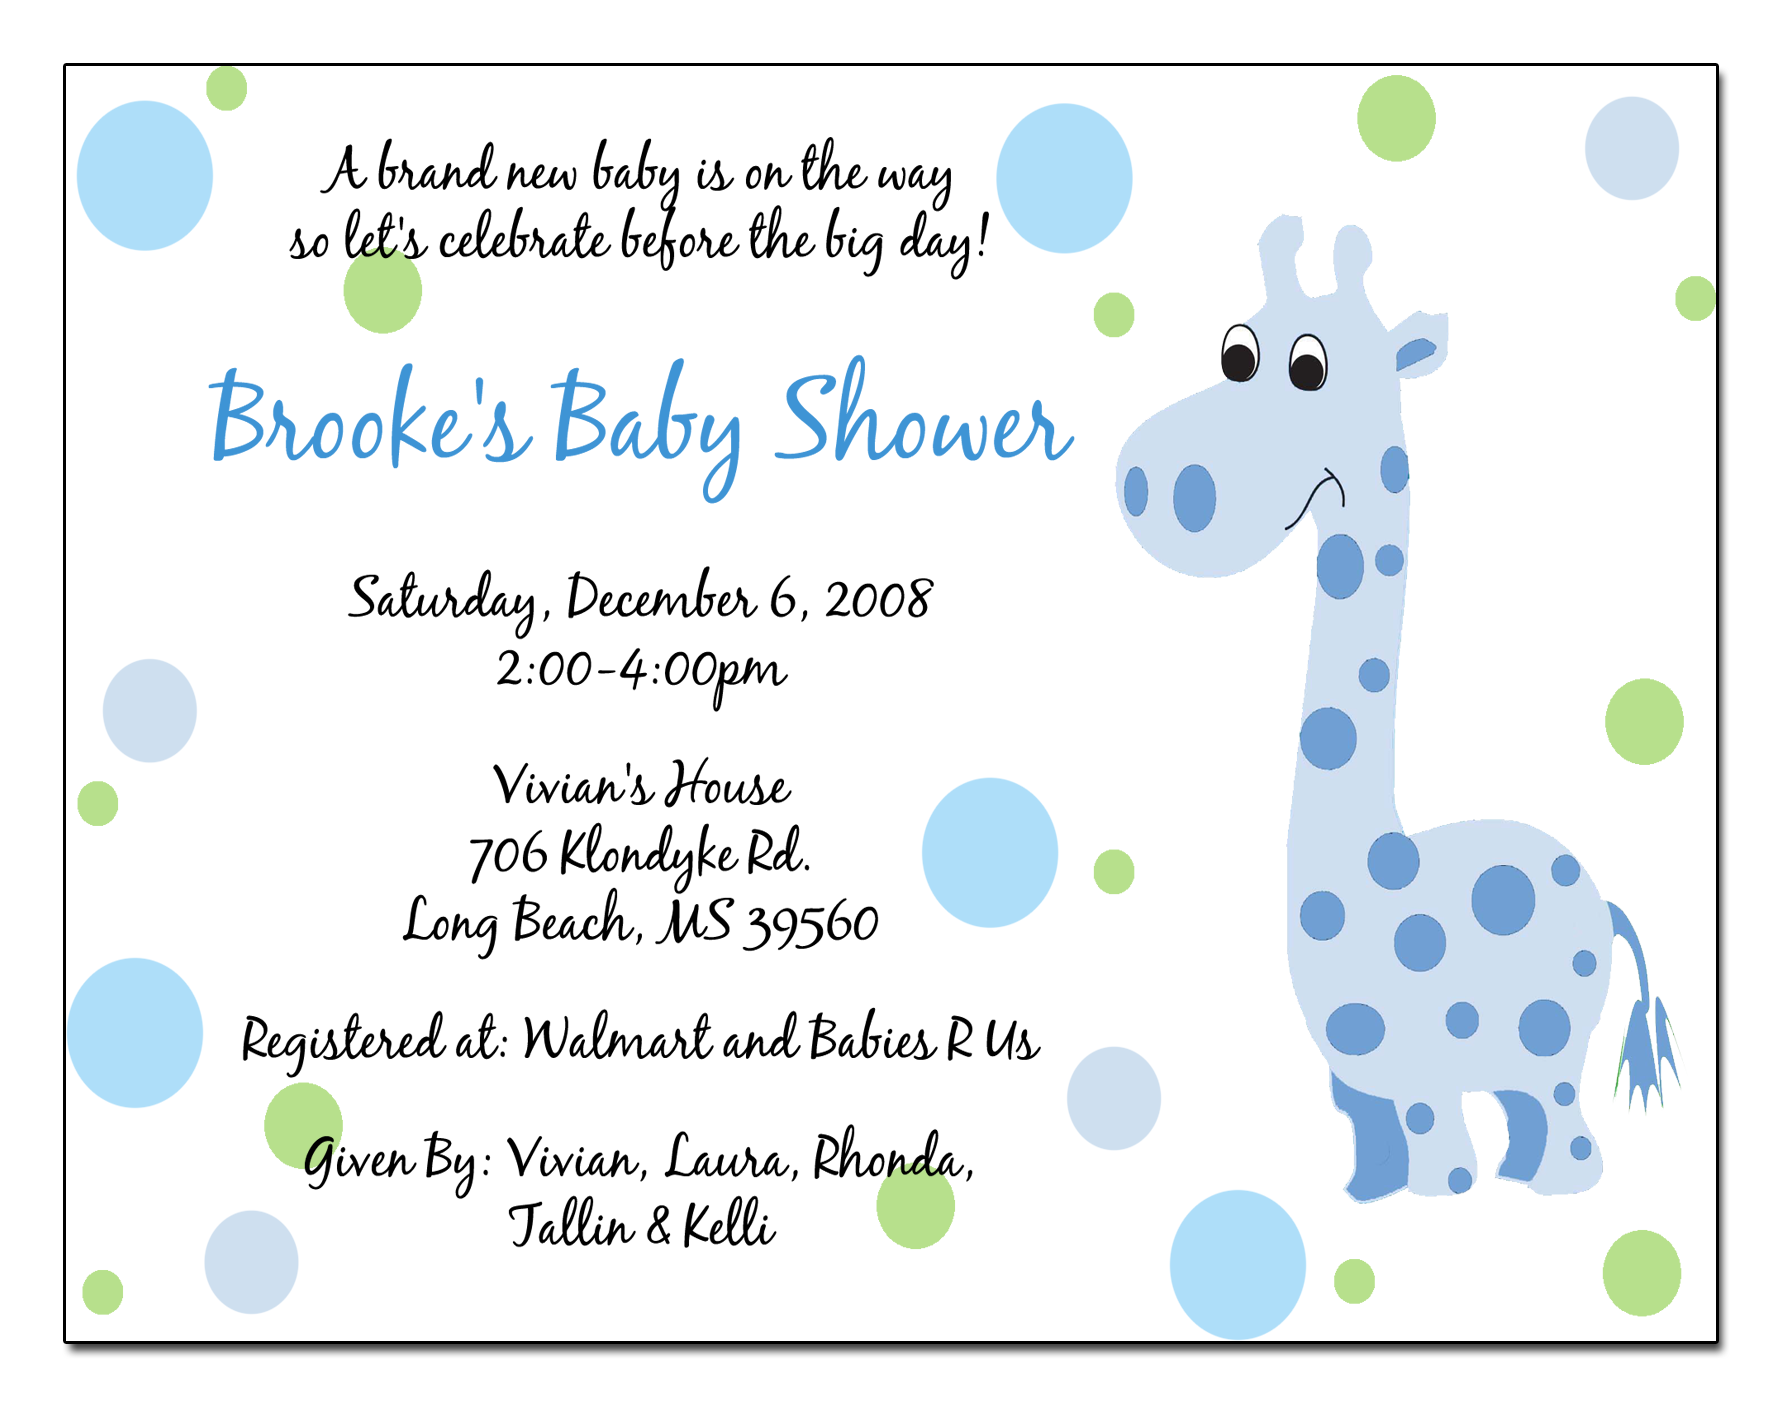 Get Free Template When To Send Out Baby Shower Invitation Baby Shower Invitation Wording Boy Simple Baby Shower Invitations Baby Shower Invitations For Boys